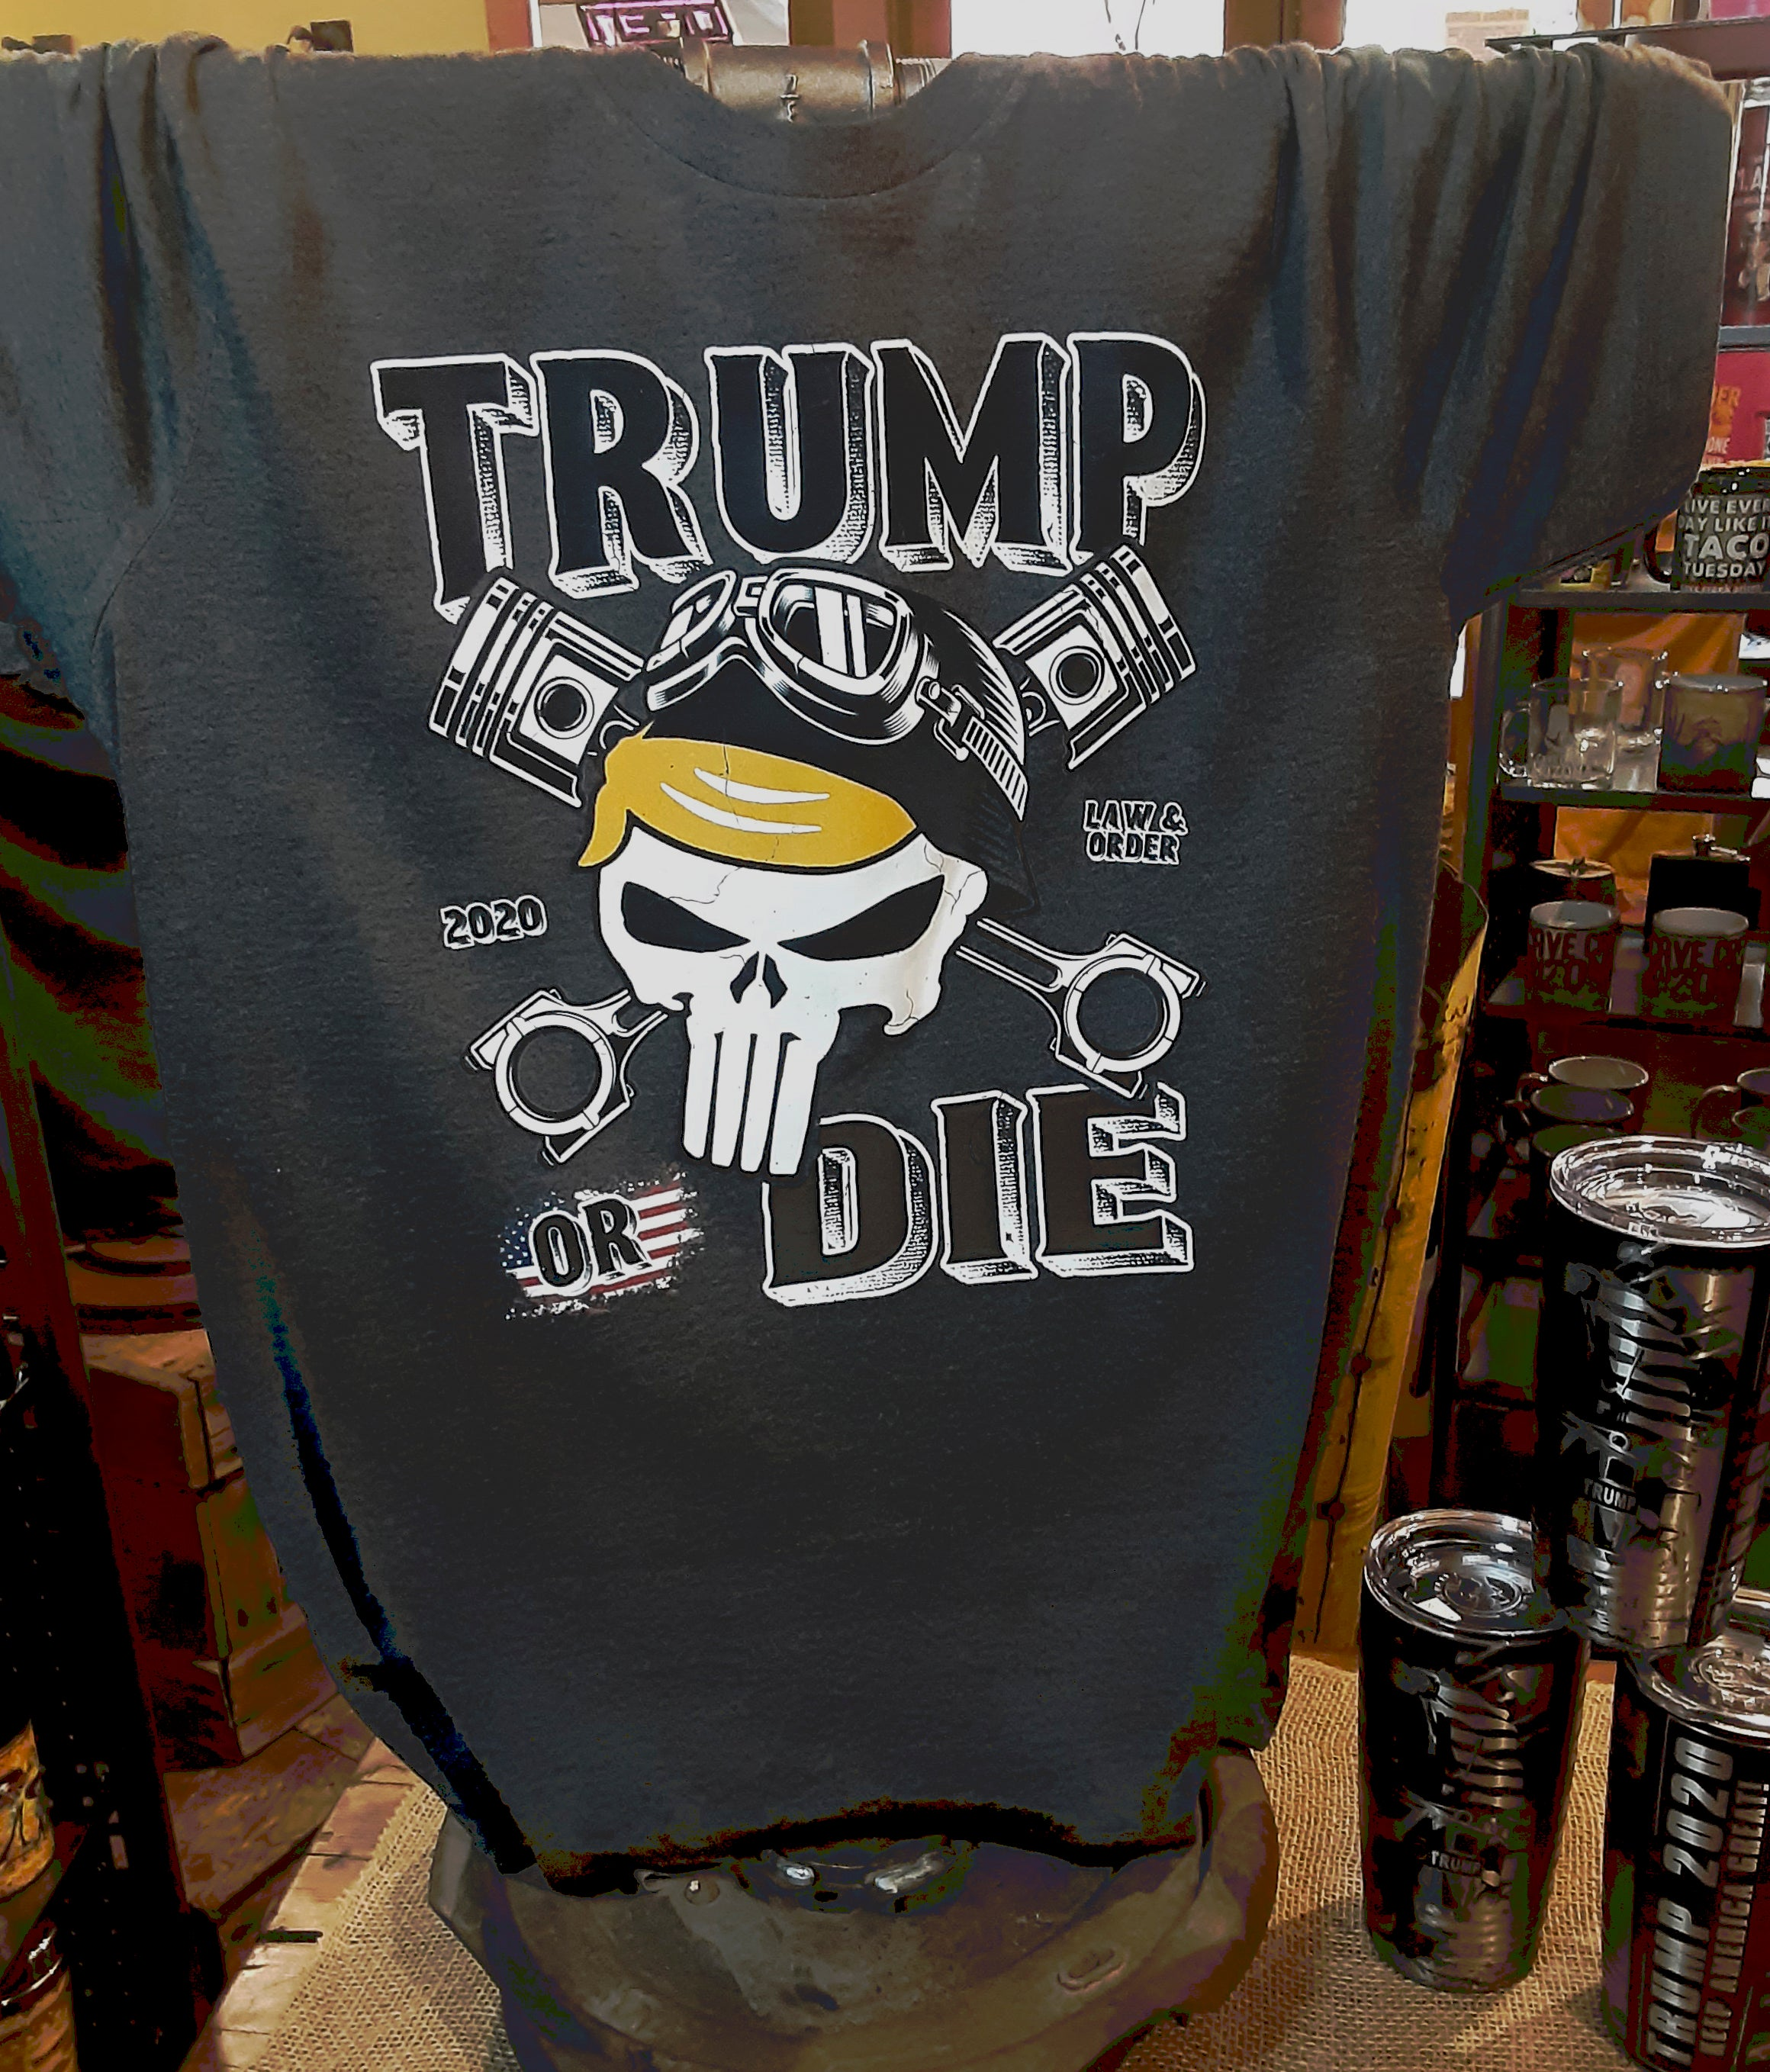 Trump or Die tee shirt in gift shop Teeslanger